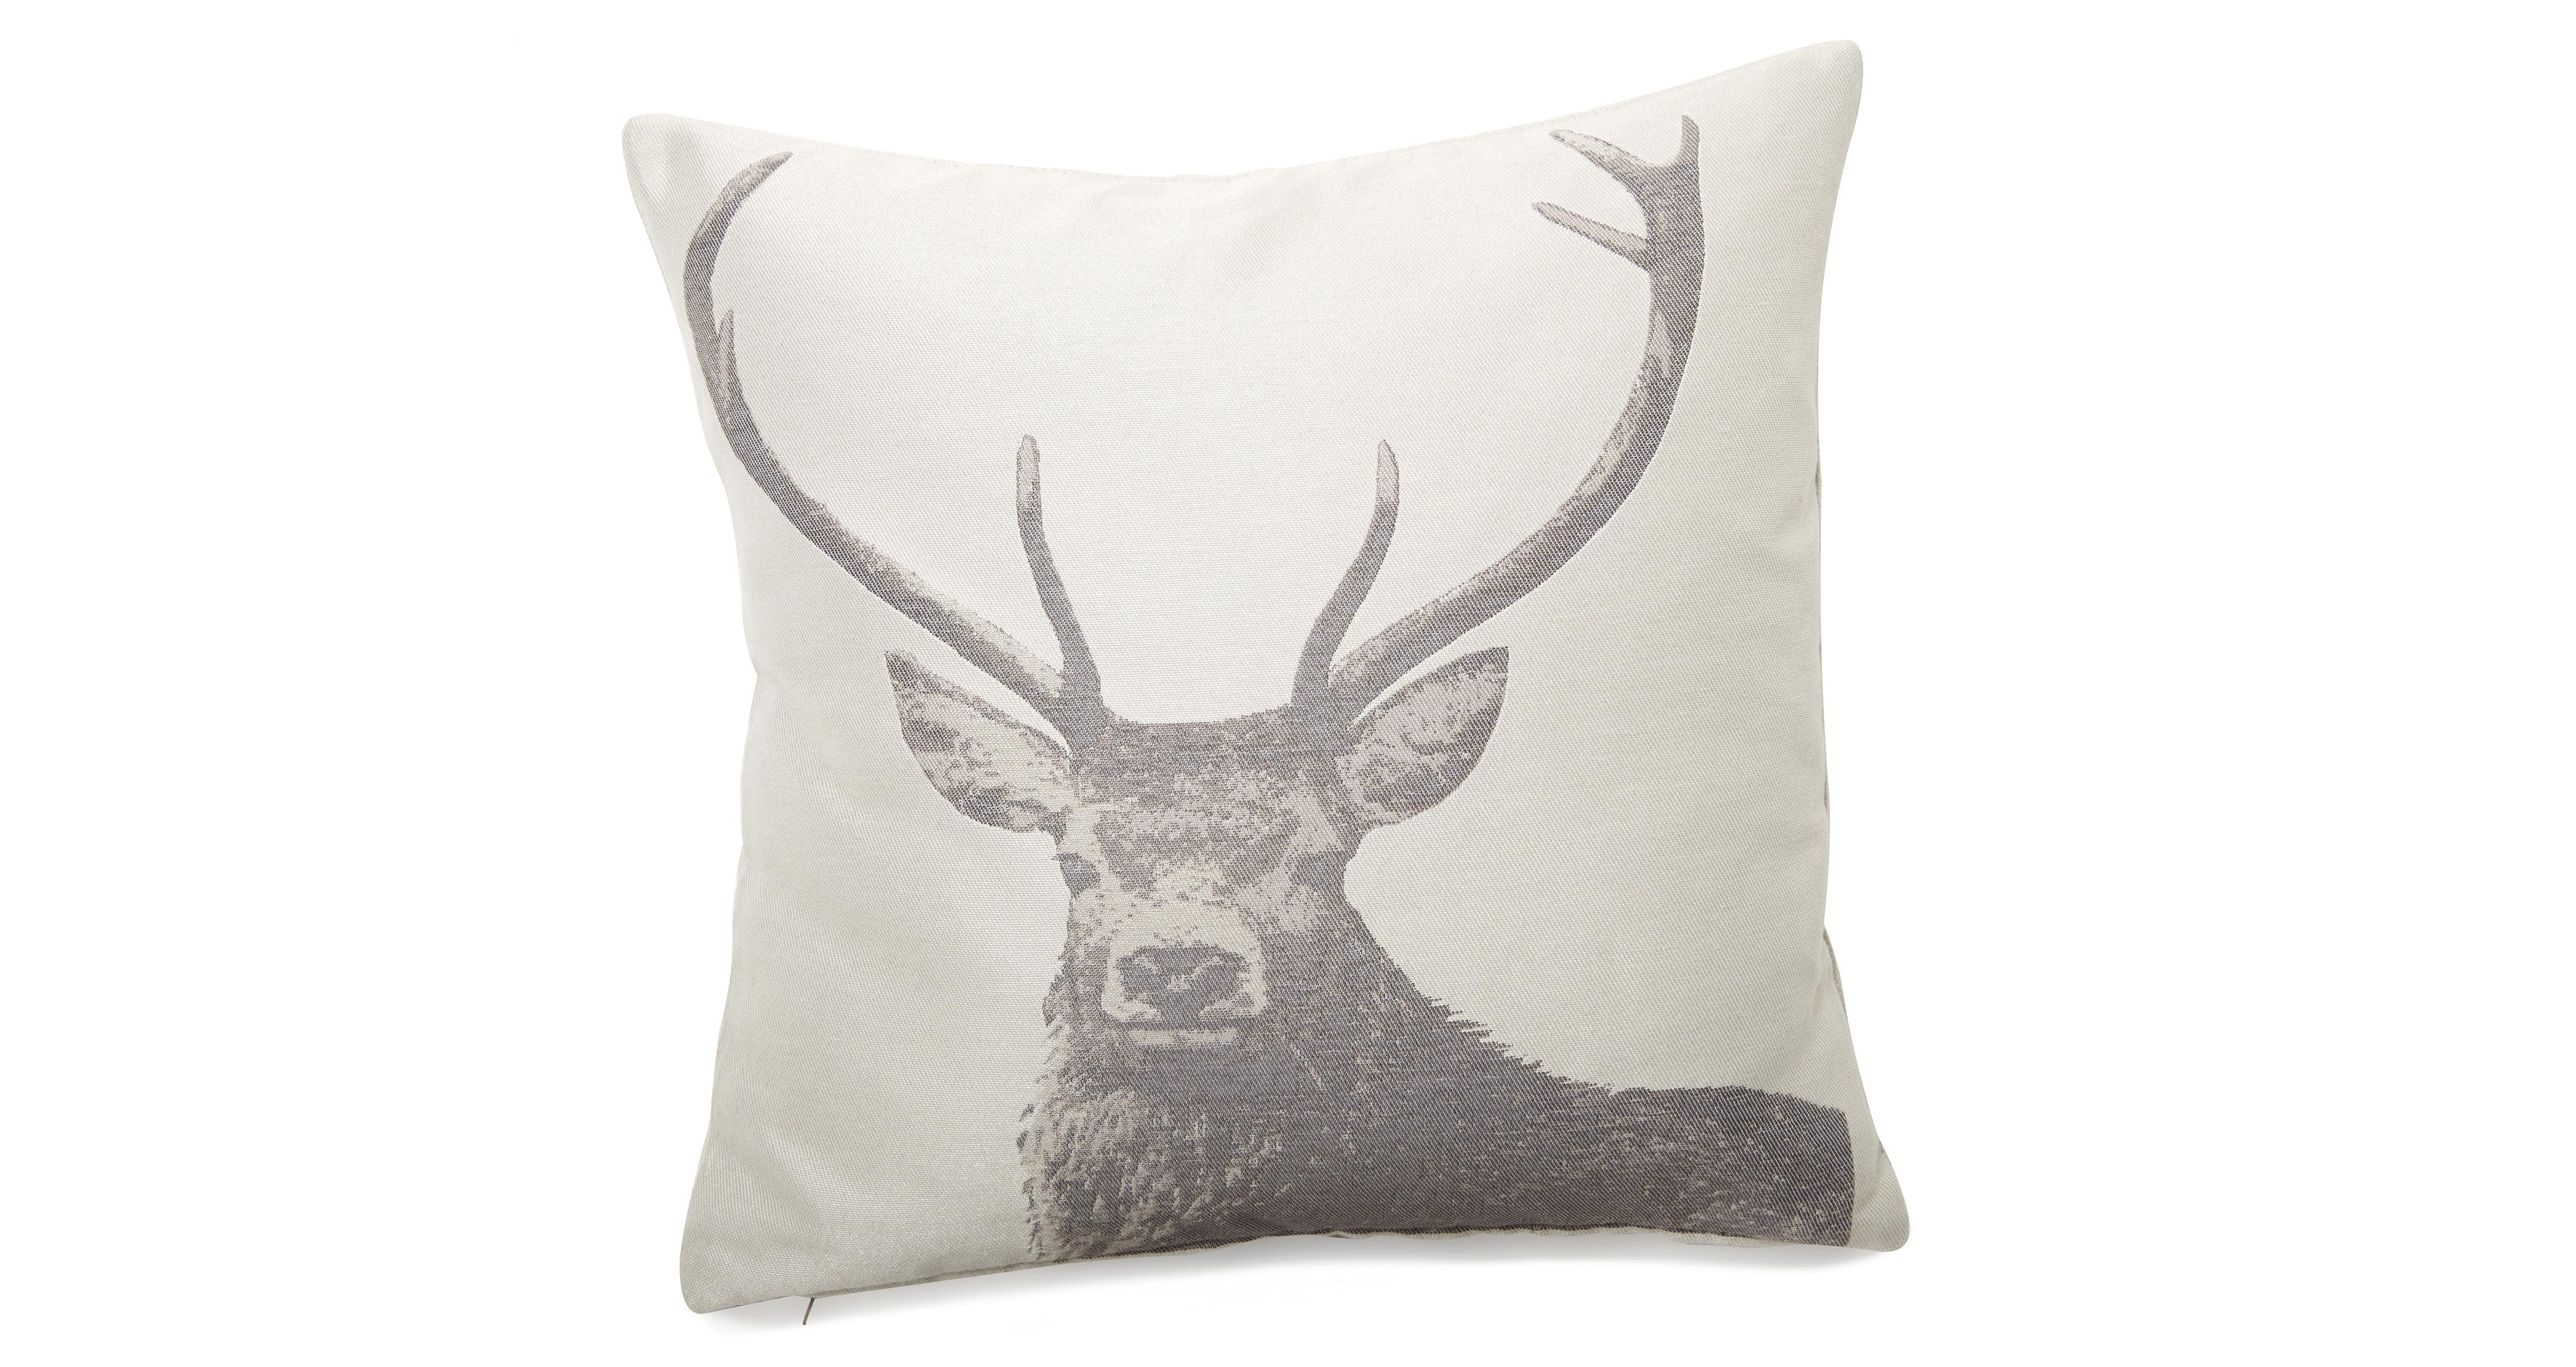 sofa 10 year guarantee steam clean upholstery moray stag scatter cushion | dfs